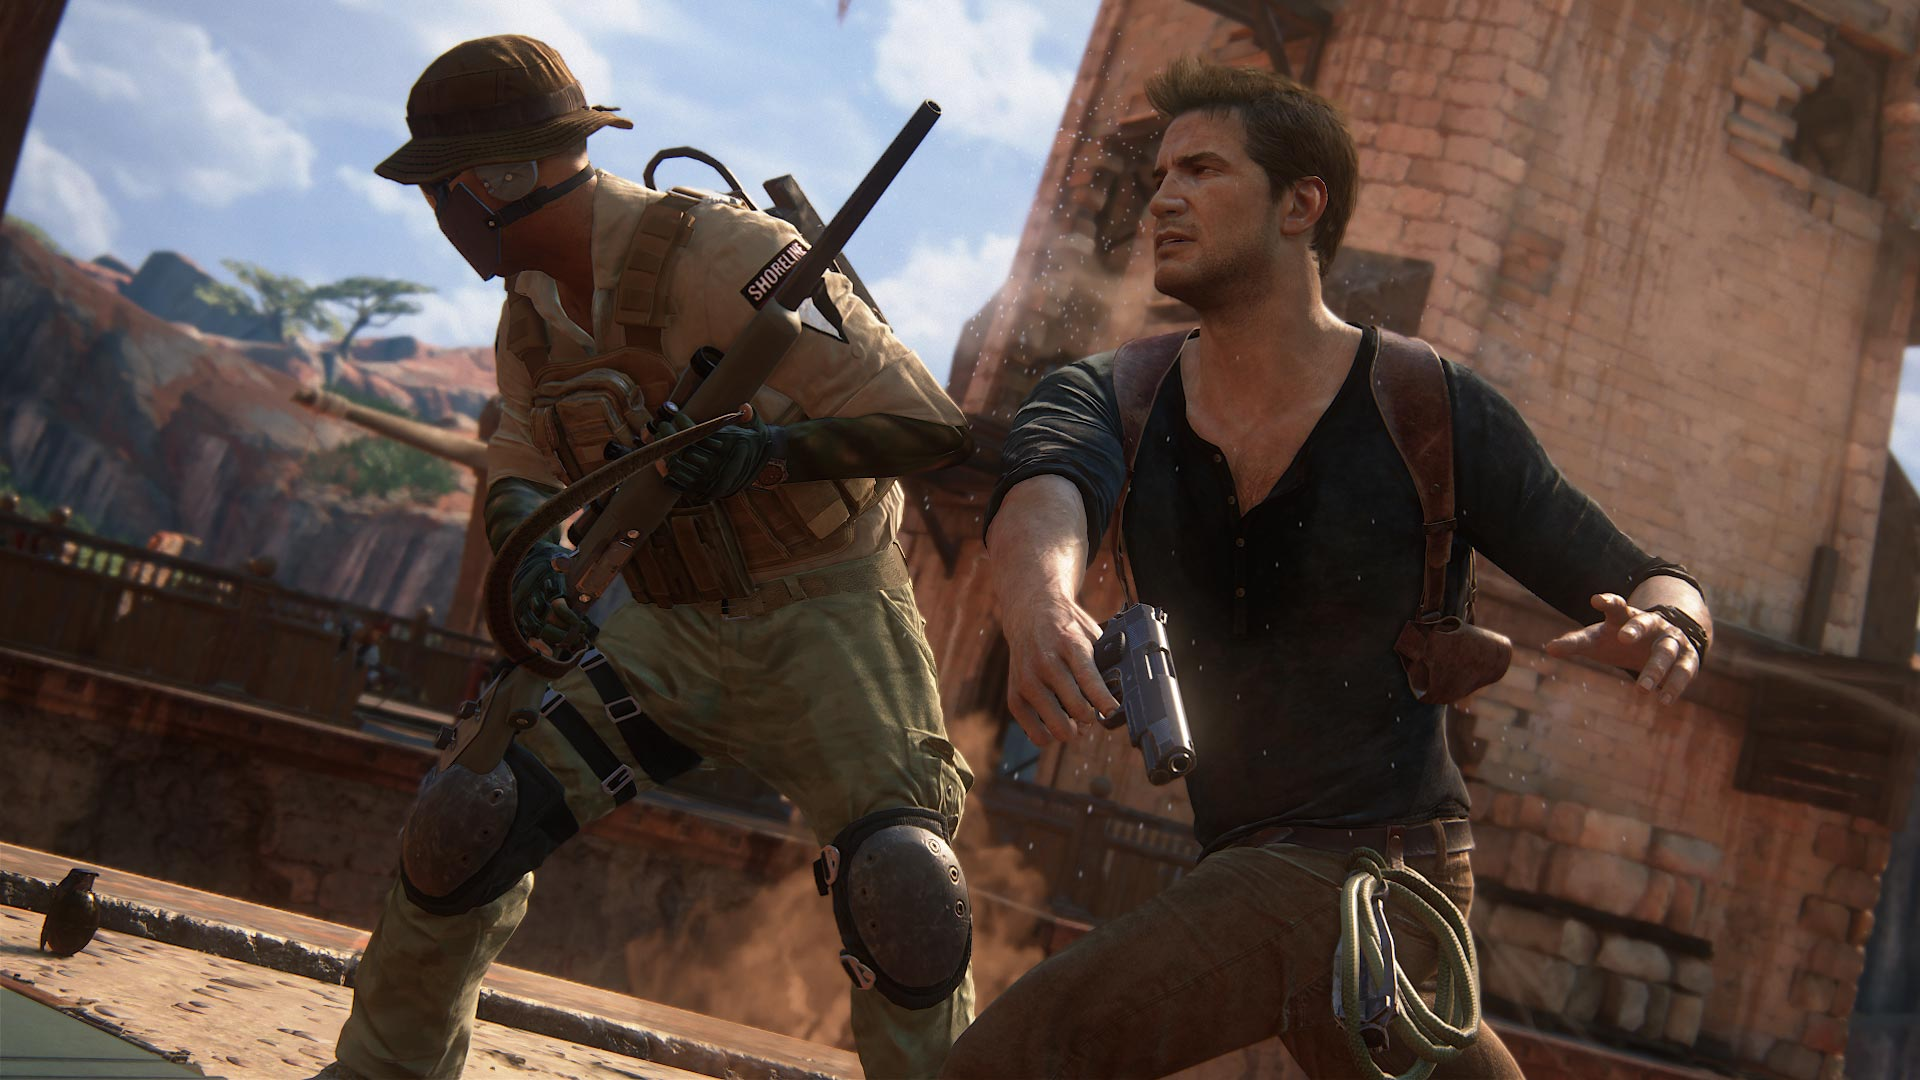 Sony's Uncharted movie loses another director